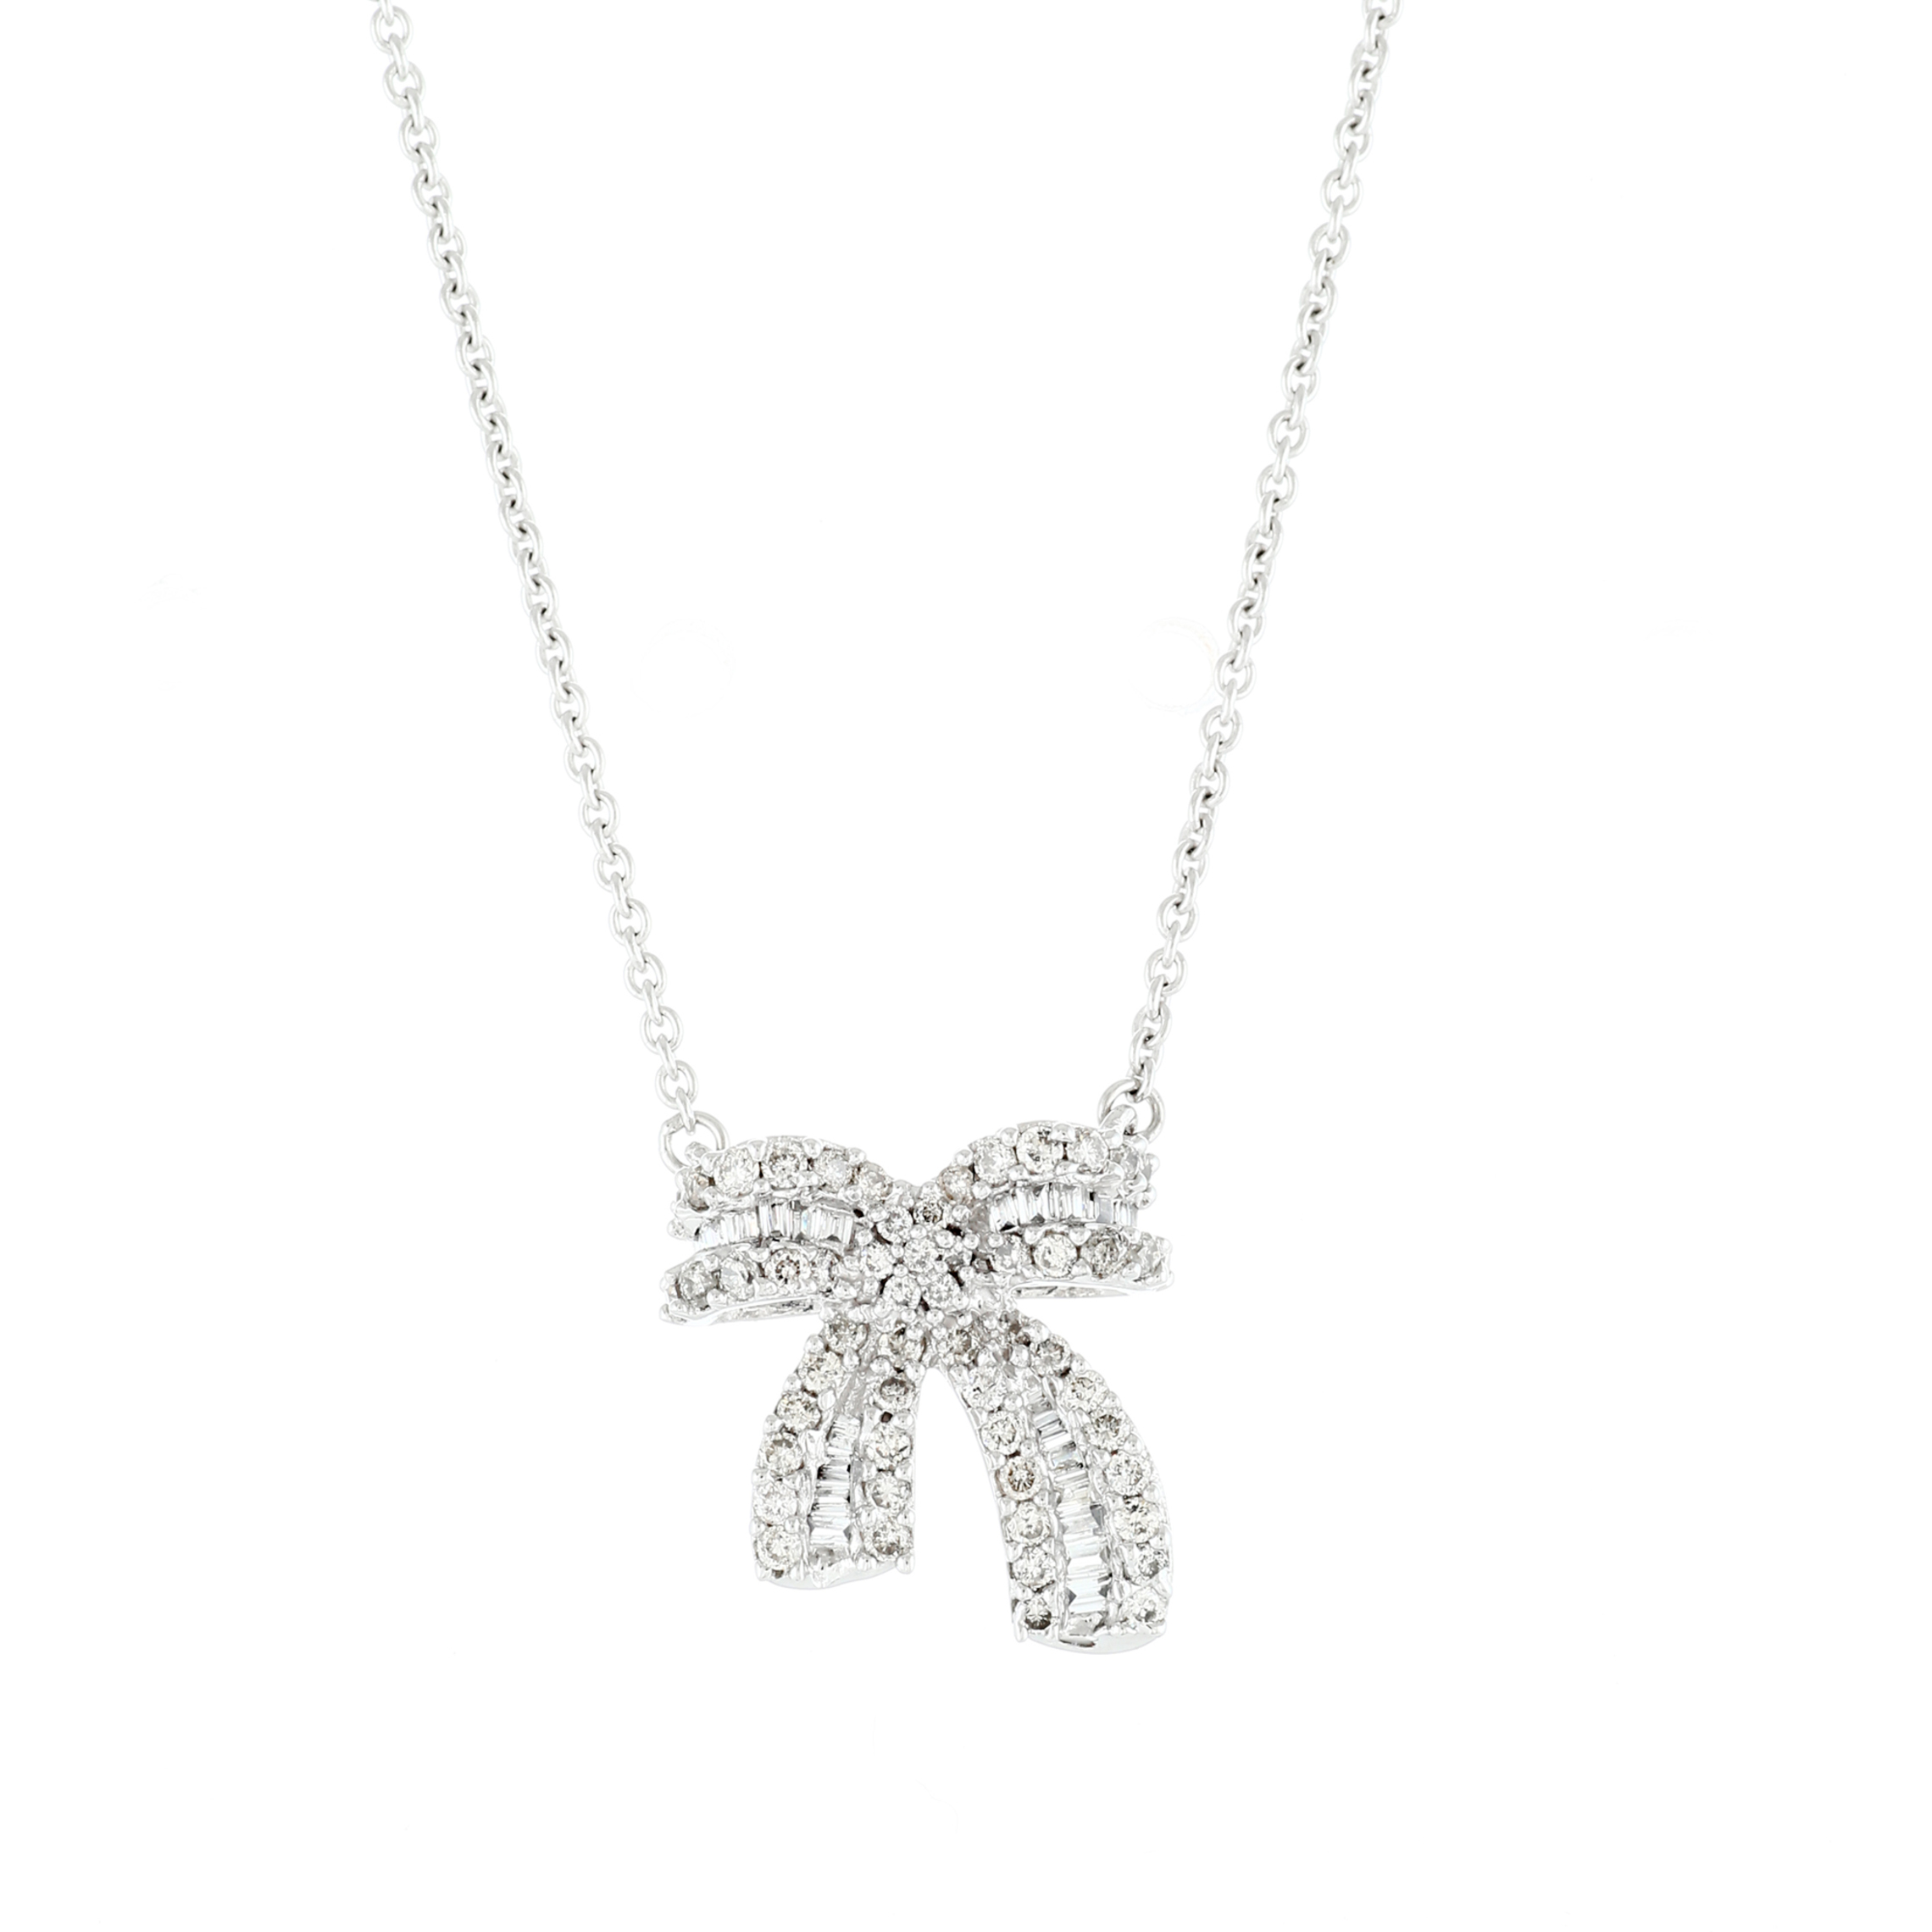 Bow Tie Diamond Necklace